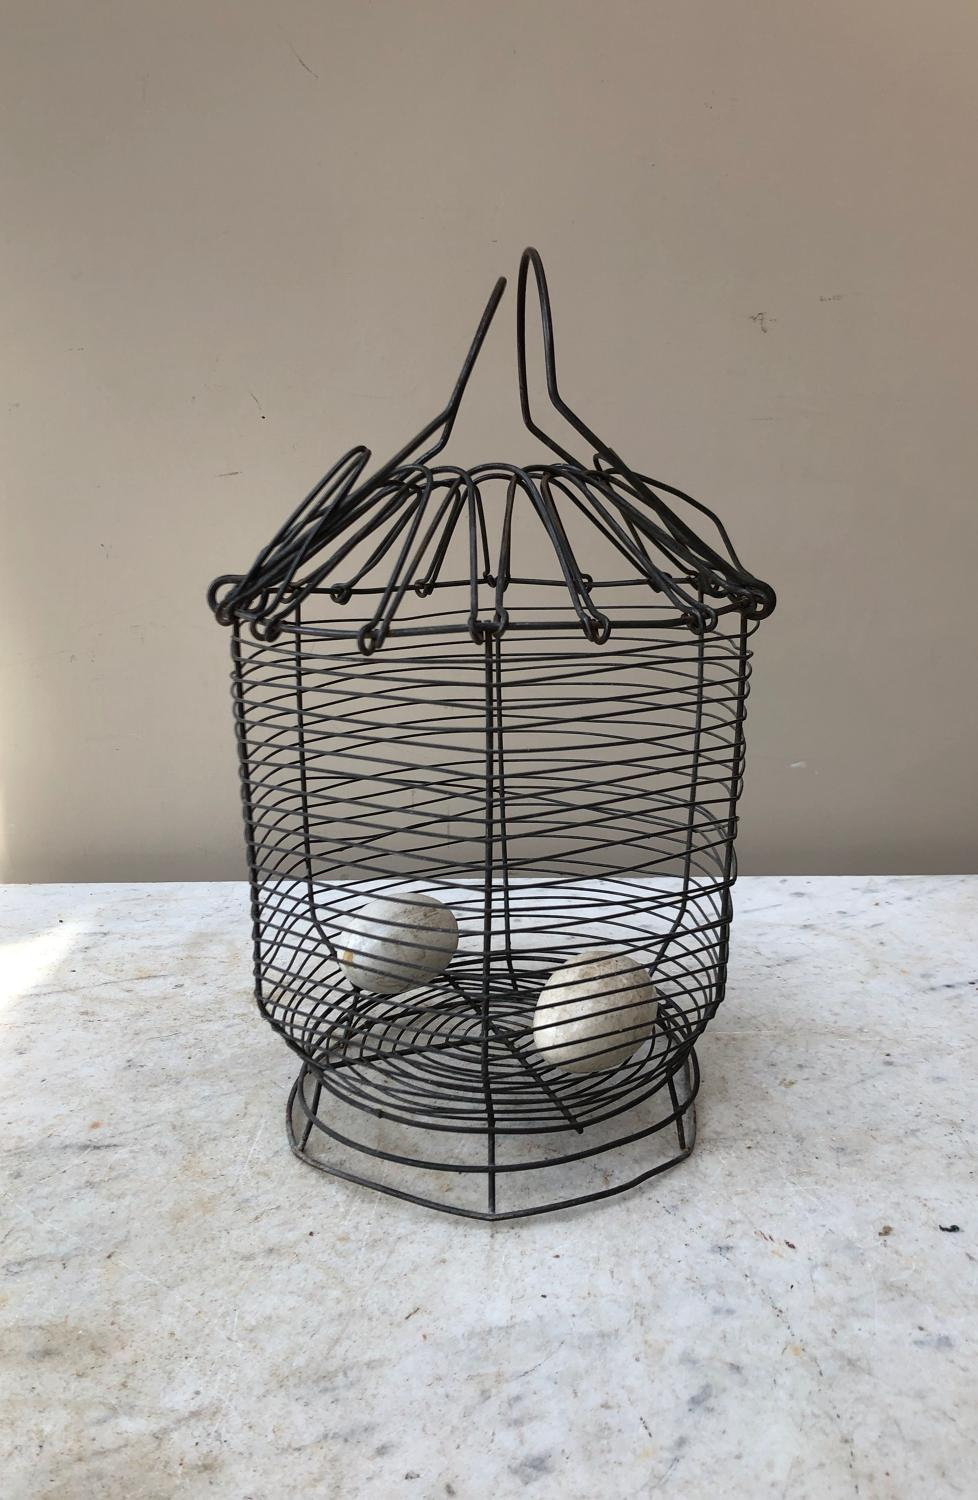 Early 20th Century Wire Work Egg Basket - Salad Shaker